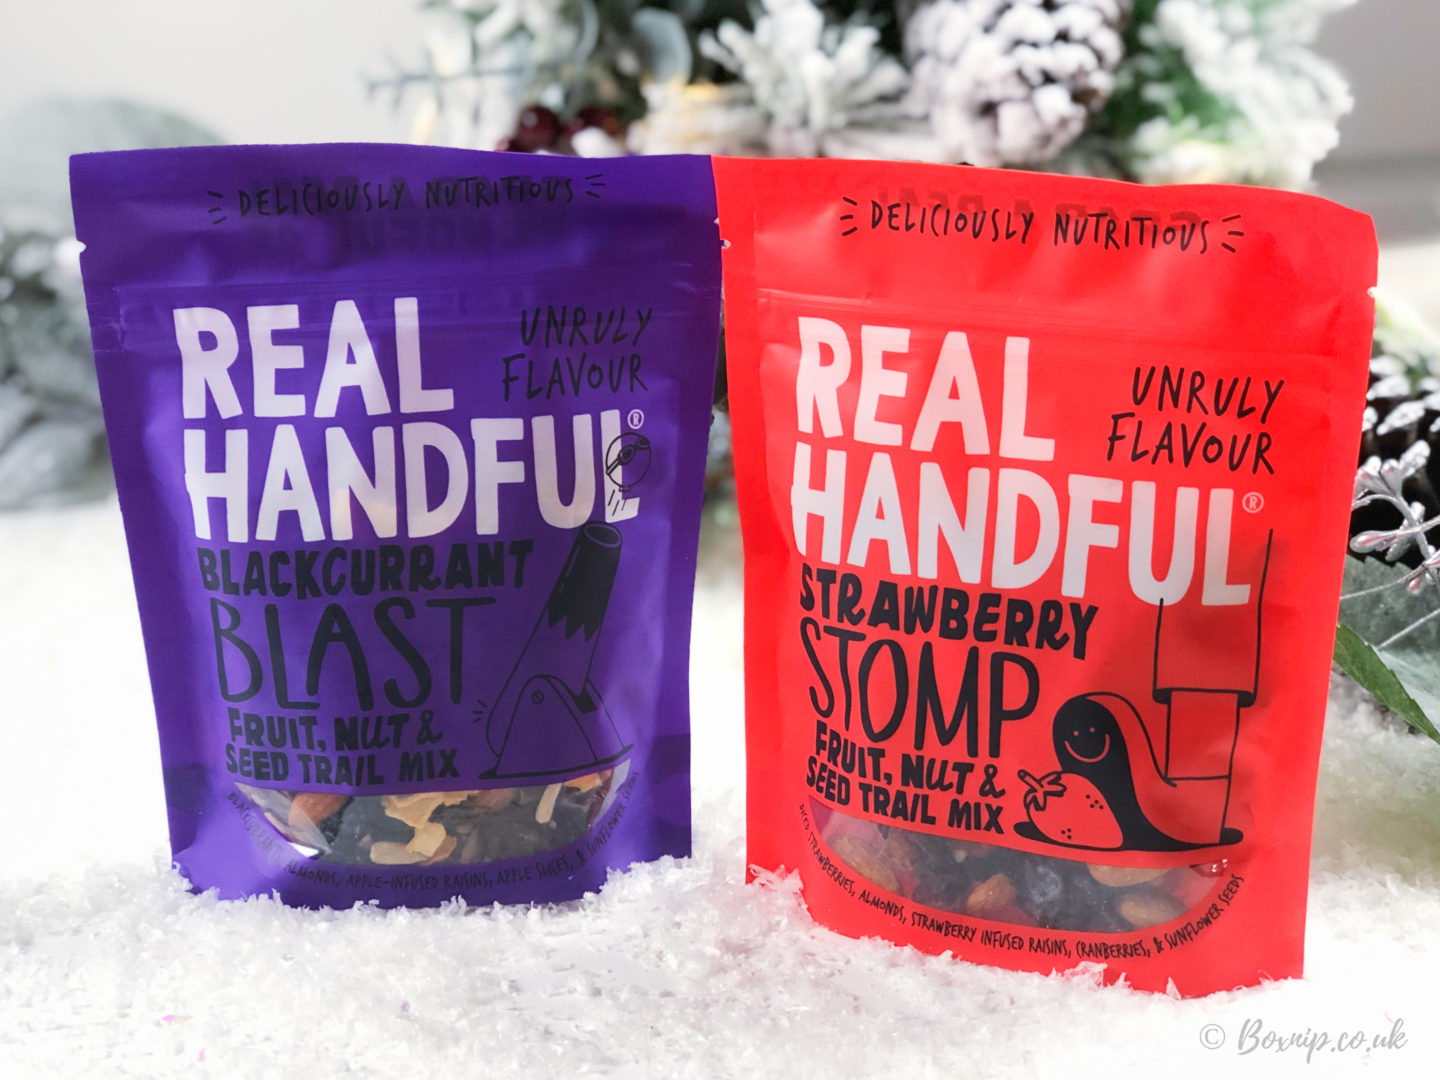 Real Handful Strawberry Stomp Trail Mix / Blackcurrant Blast Trail Mix- November 2019 Degusta Box